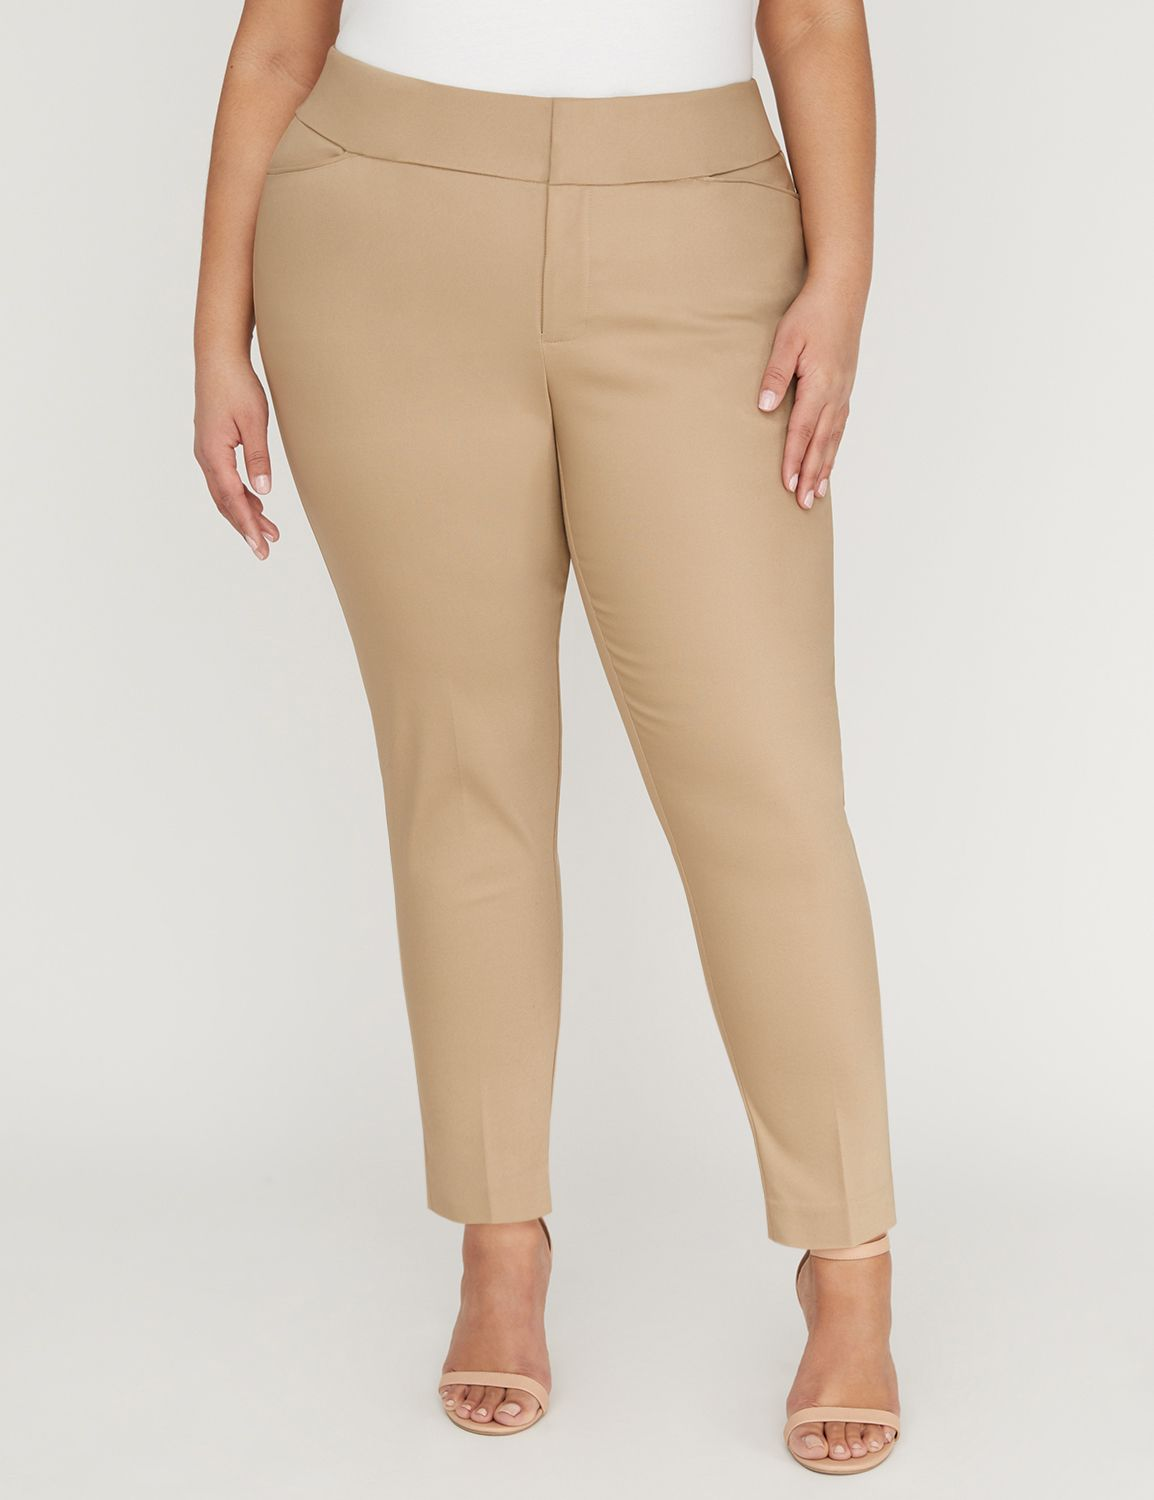 Updated Modern Stretch Ankle Pant 1087775 MODERN STRETCH WIDE WAISTBA MP-300097581